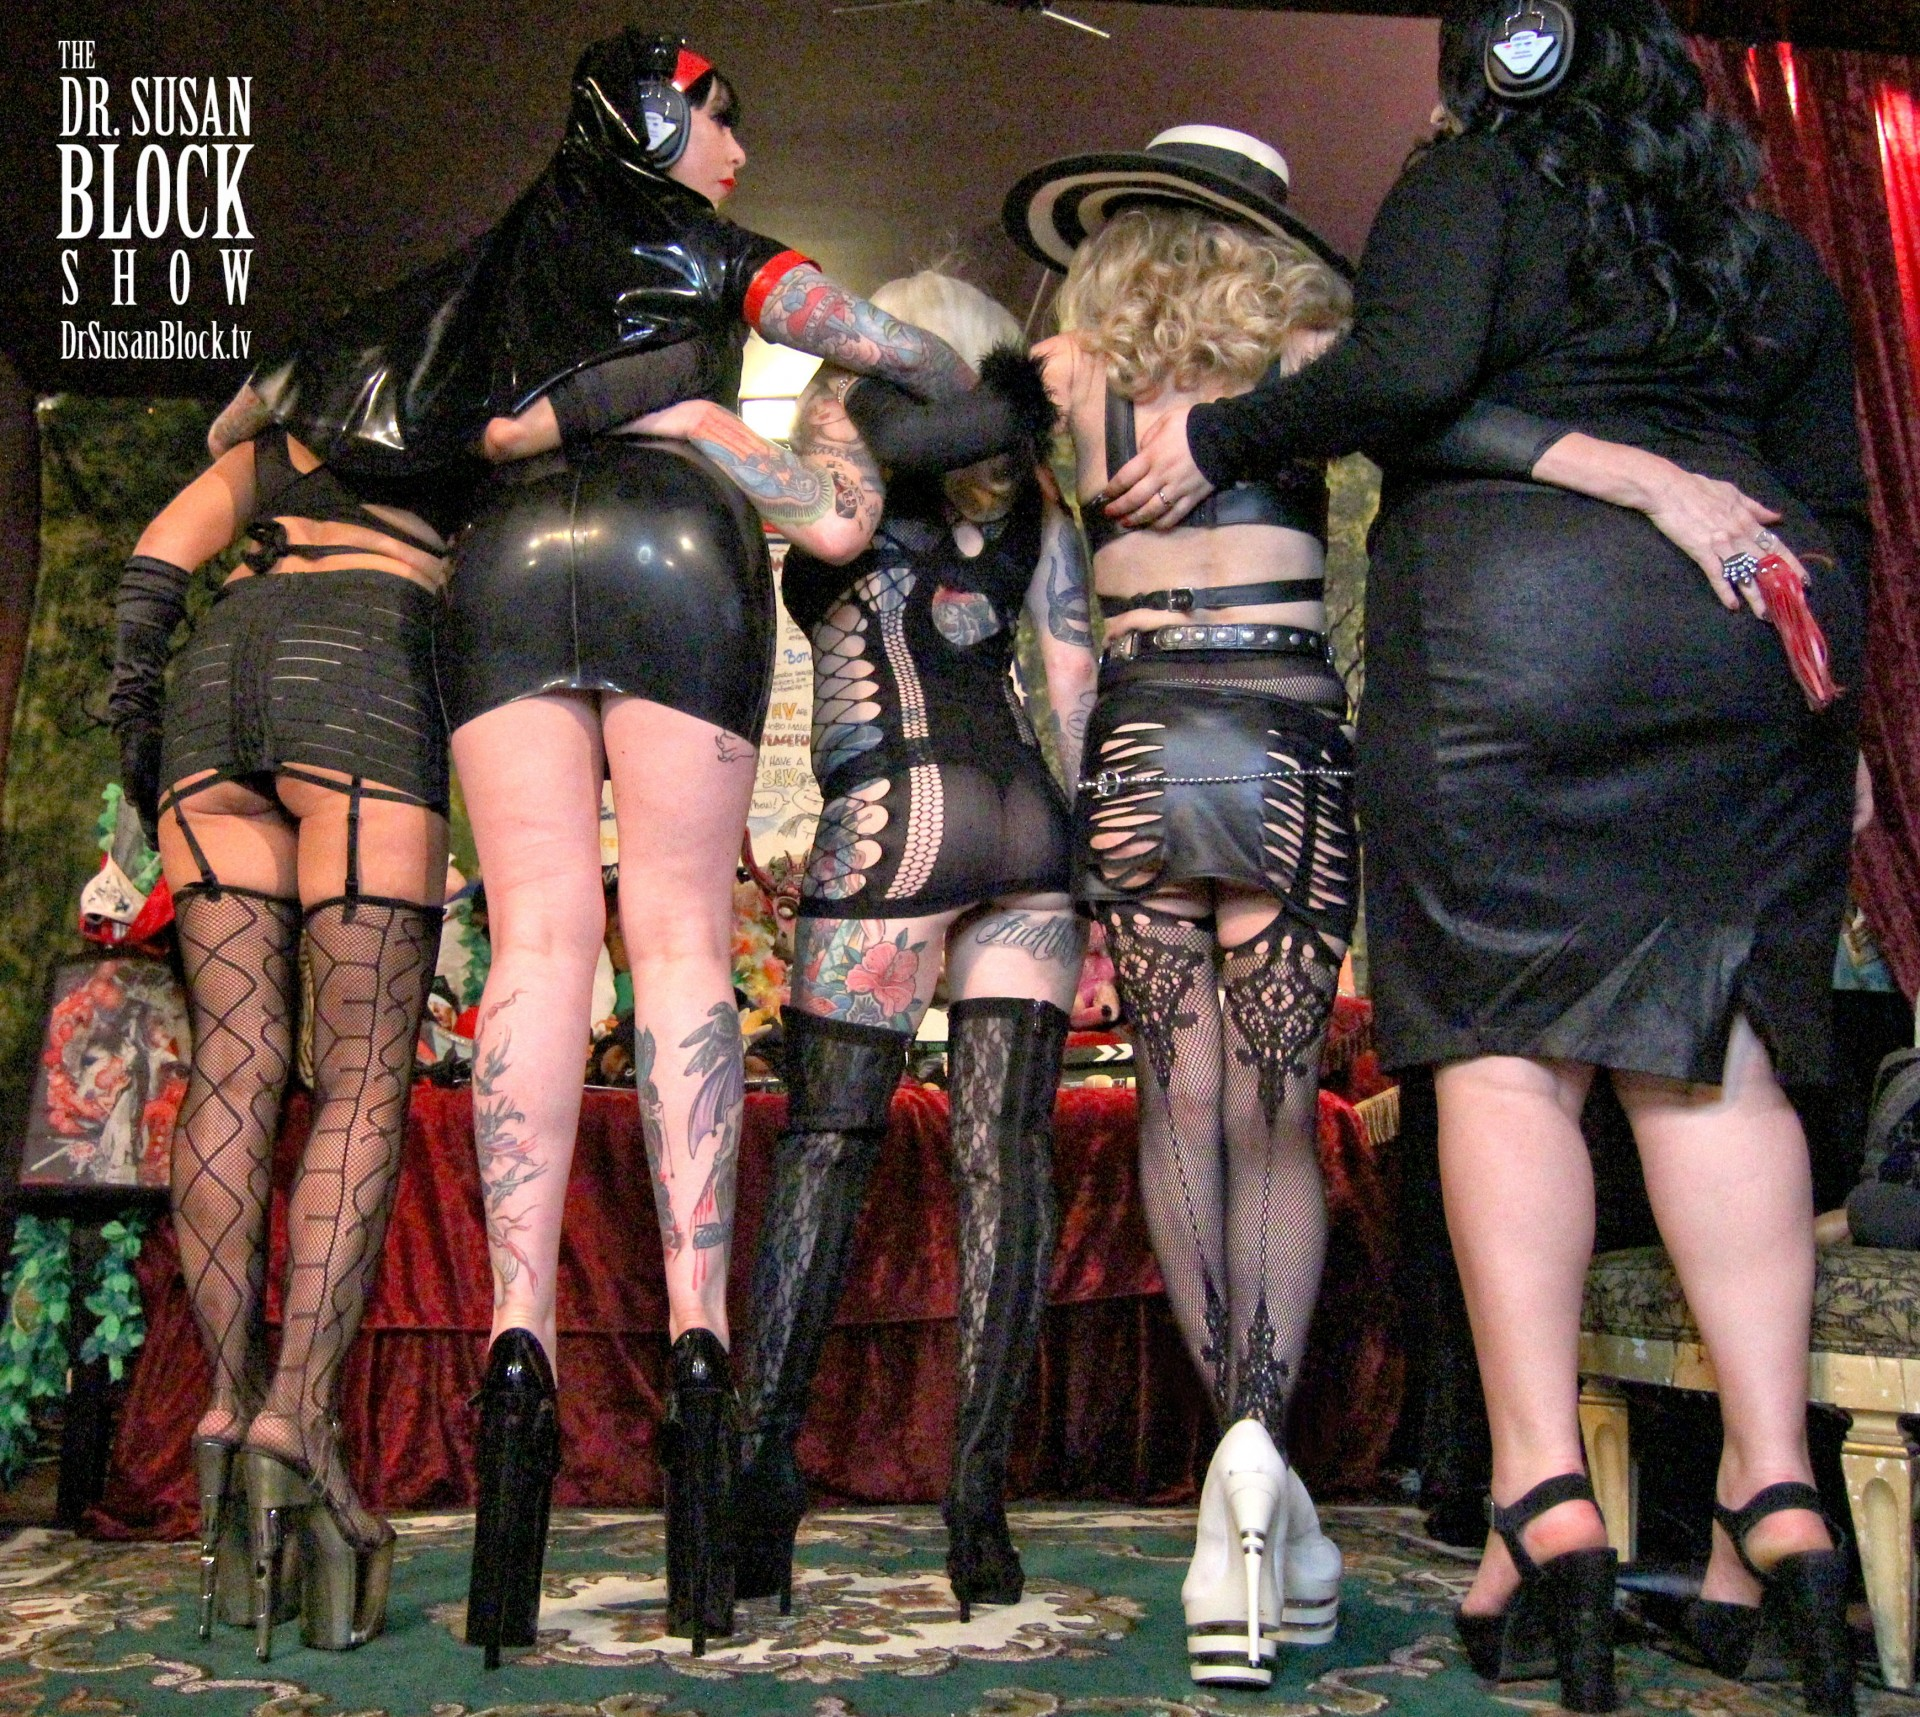 Kink Month 4 on DrSuzy.Tv: Nasty Women & Bad Hombres of Bonoboville Infantilize Trumpty Dumpty + Religious Roleplay, Hot Wax & More Spankings!